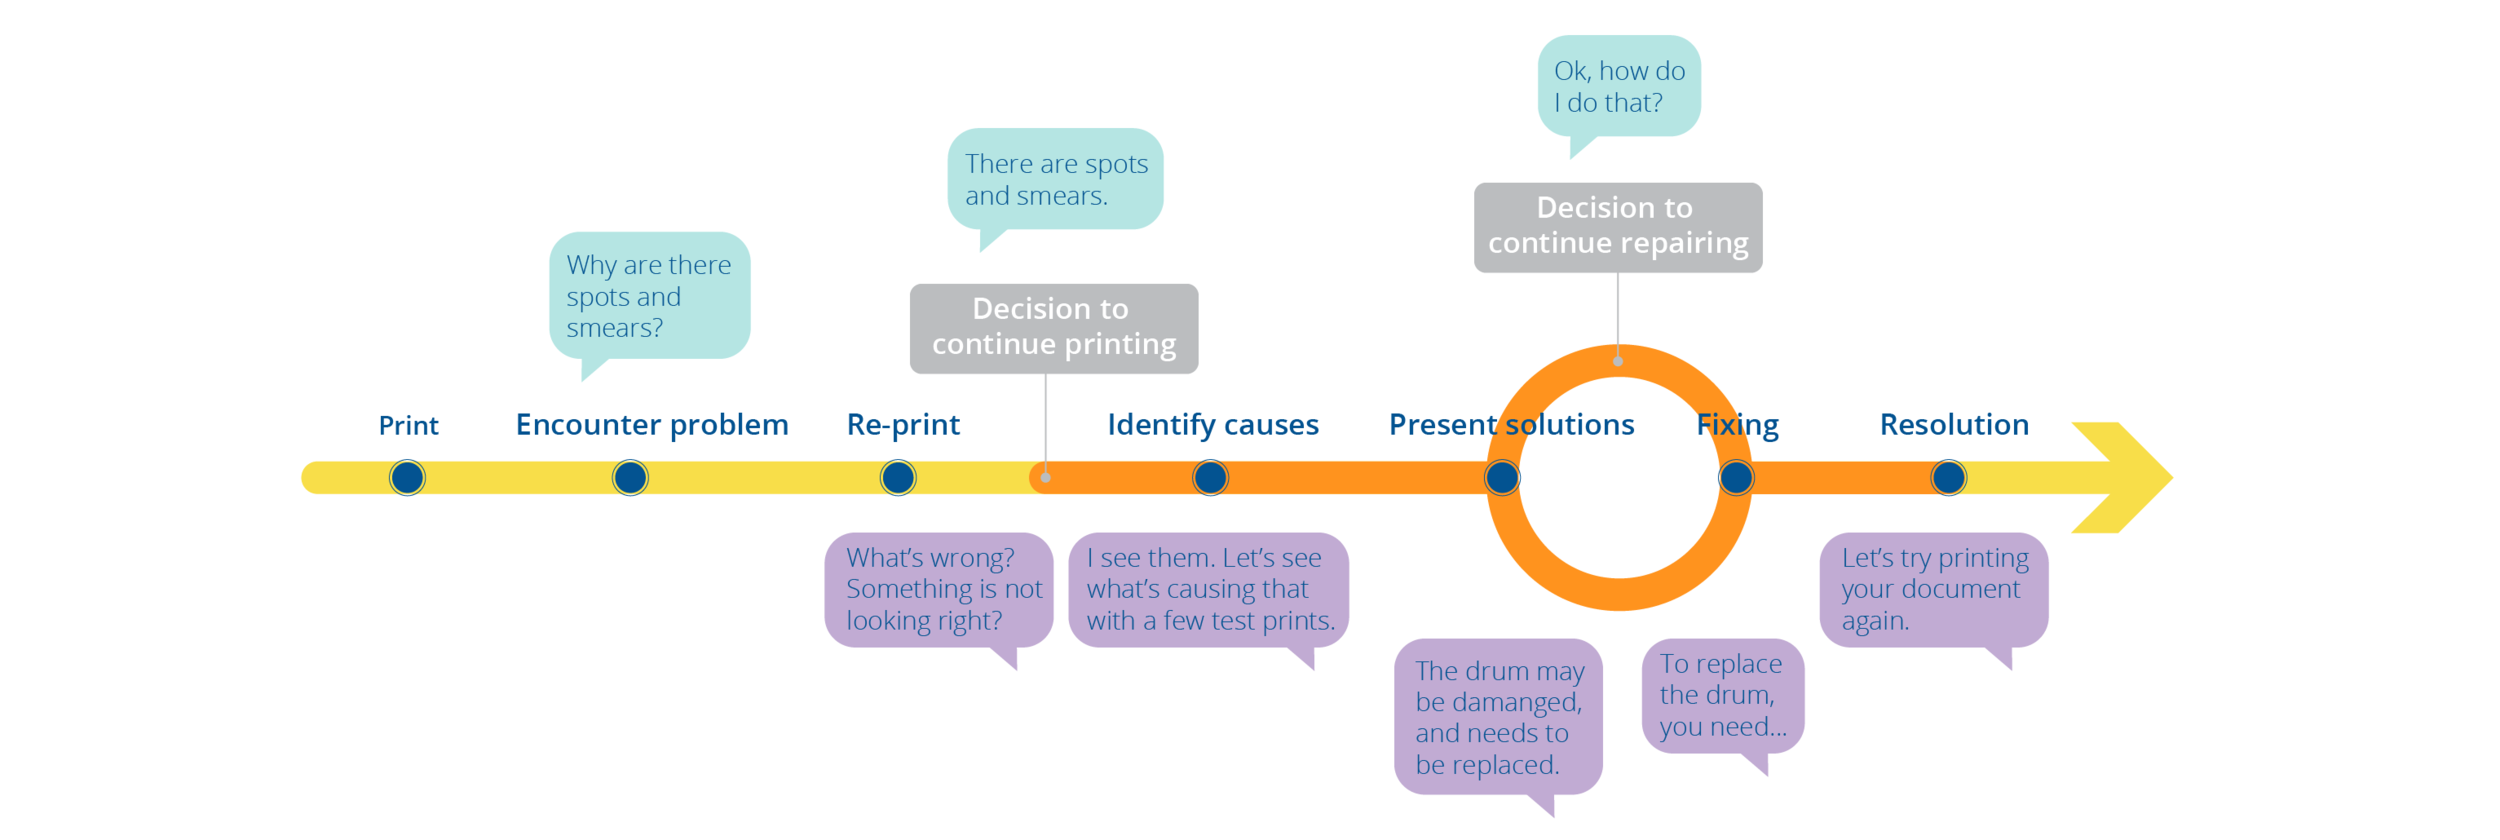 A representation of the user journey and the dialog between a user and support that influenced the workflow.